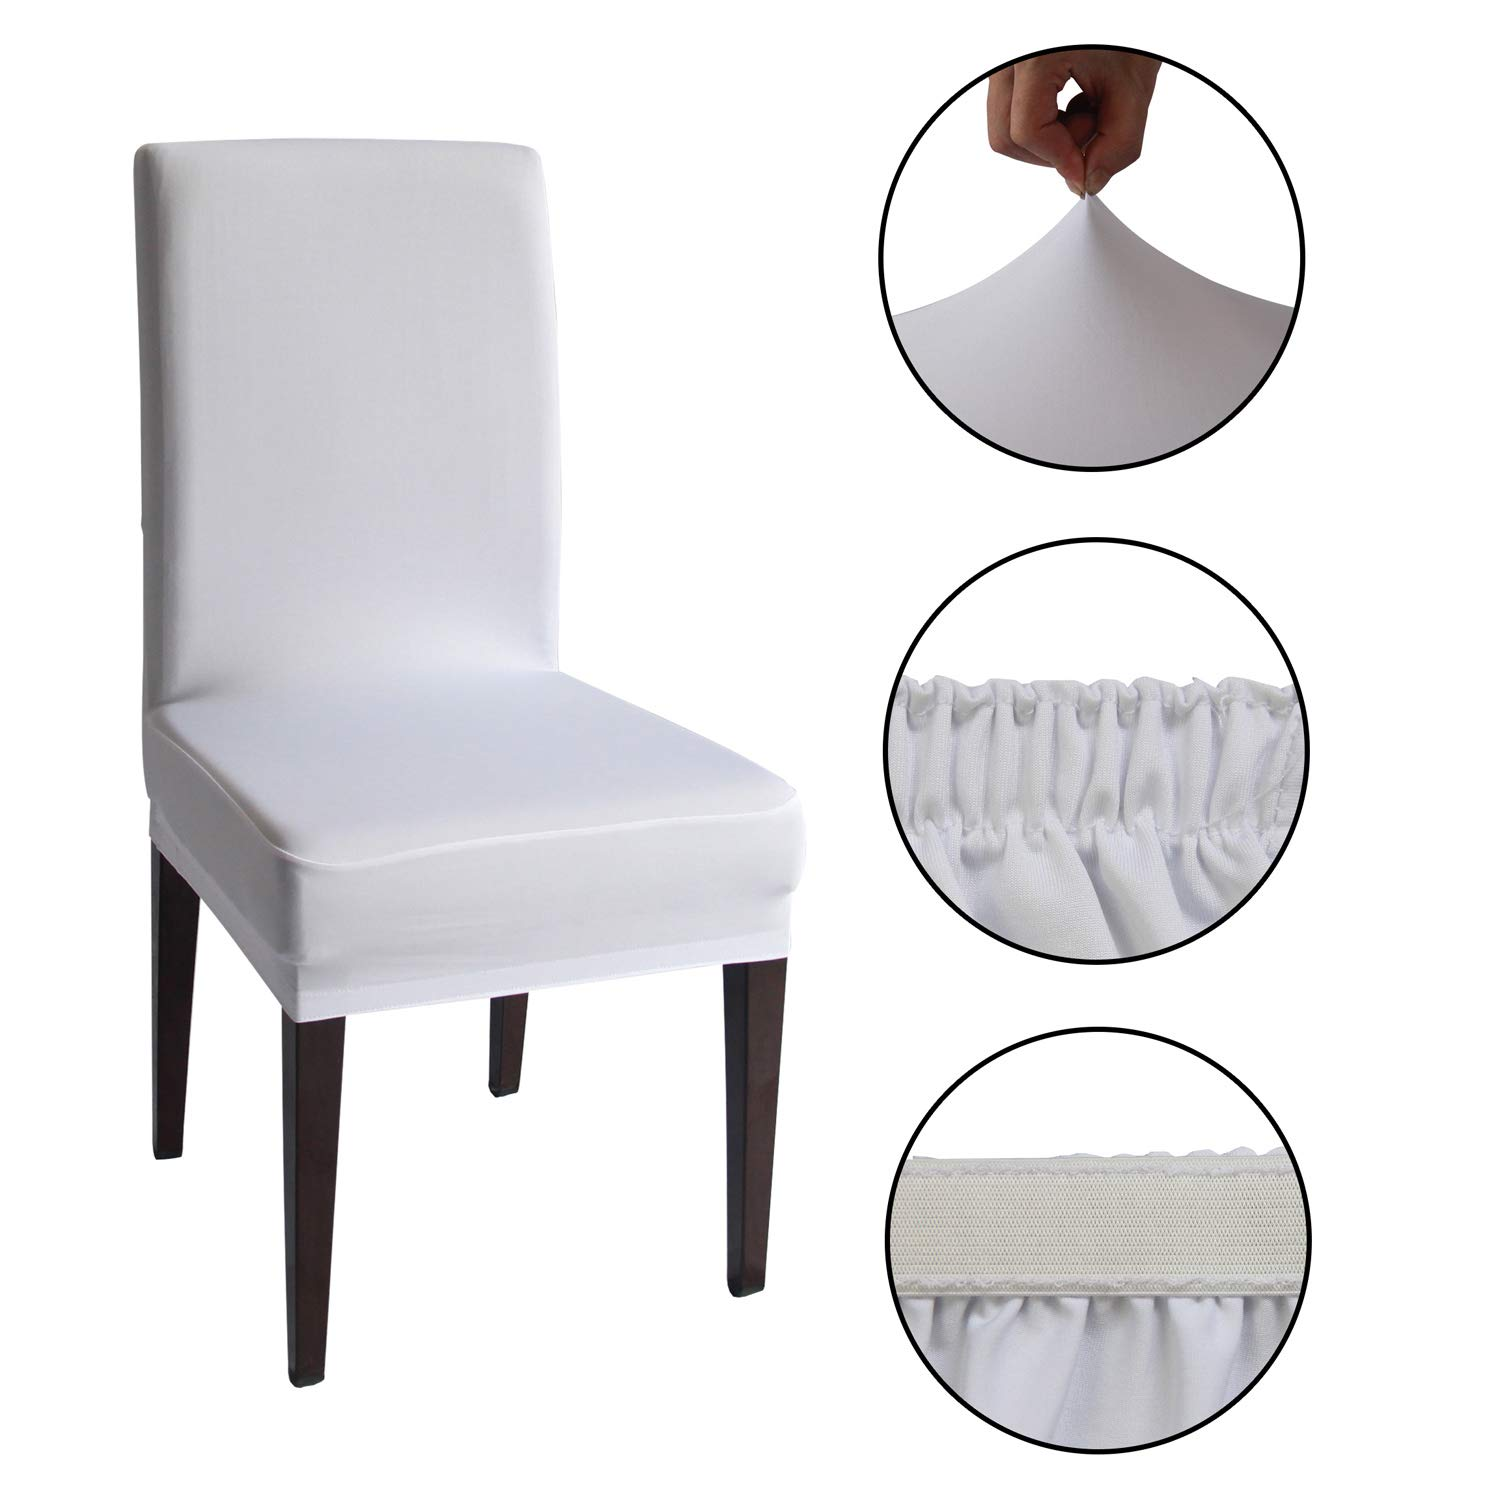 4 PCS Knit Removable Washable Dining Chair Slipcovers Gray, 4 Gray Spandex Stretch Dining Chair Covers